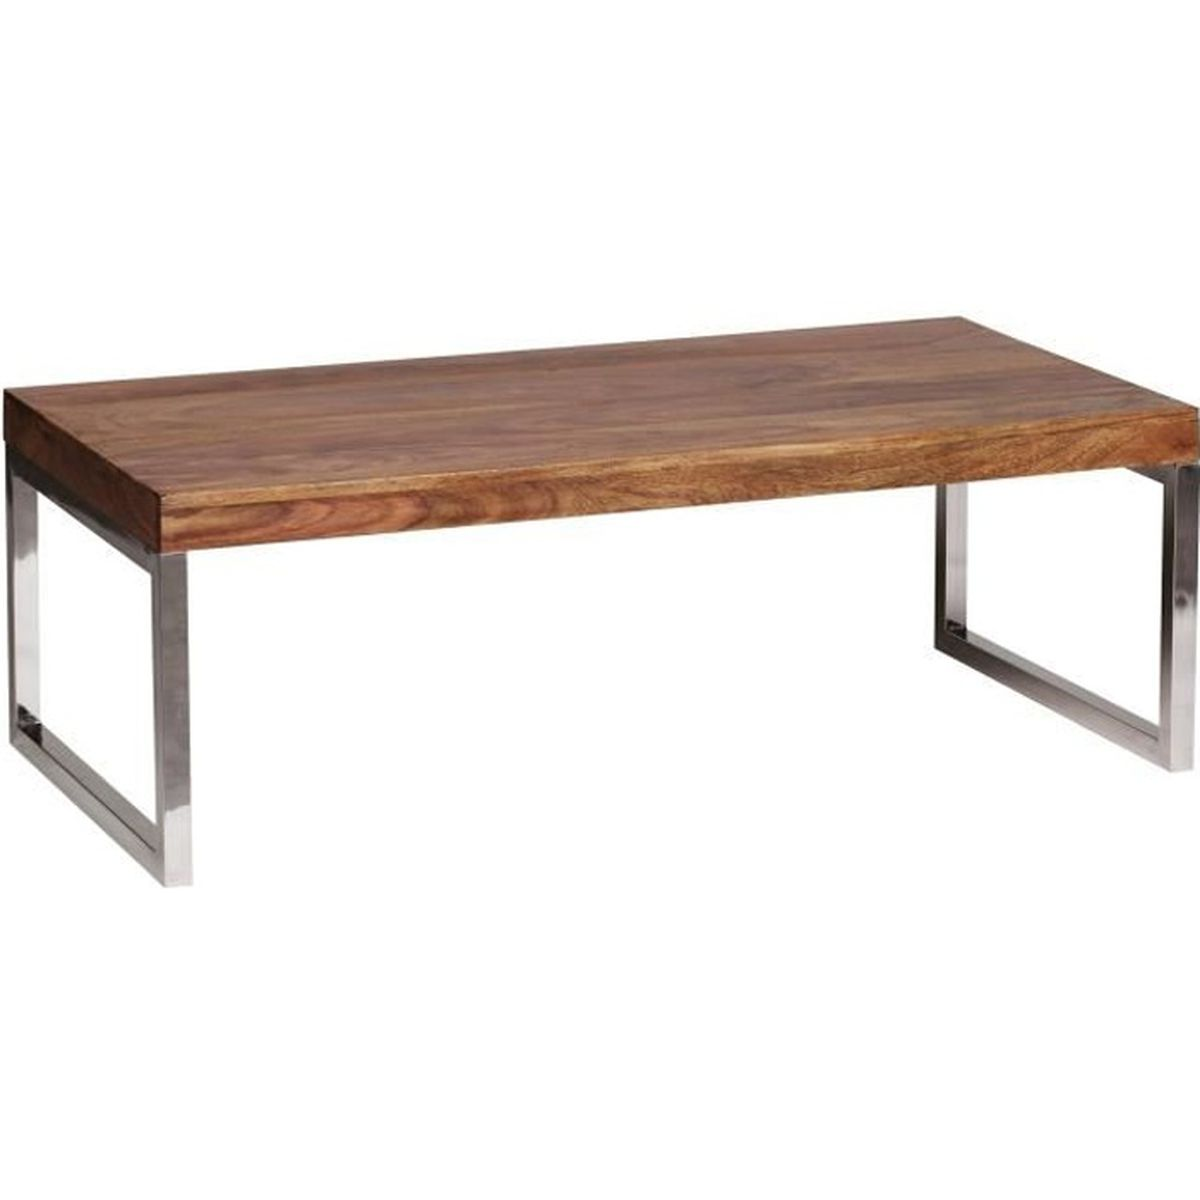 Salon Sheesham Bois Massif 120cm En Large Table Basse Wohnling De cFK1lJT3